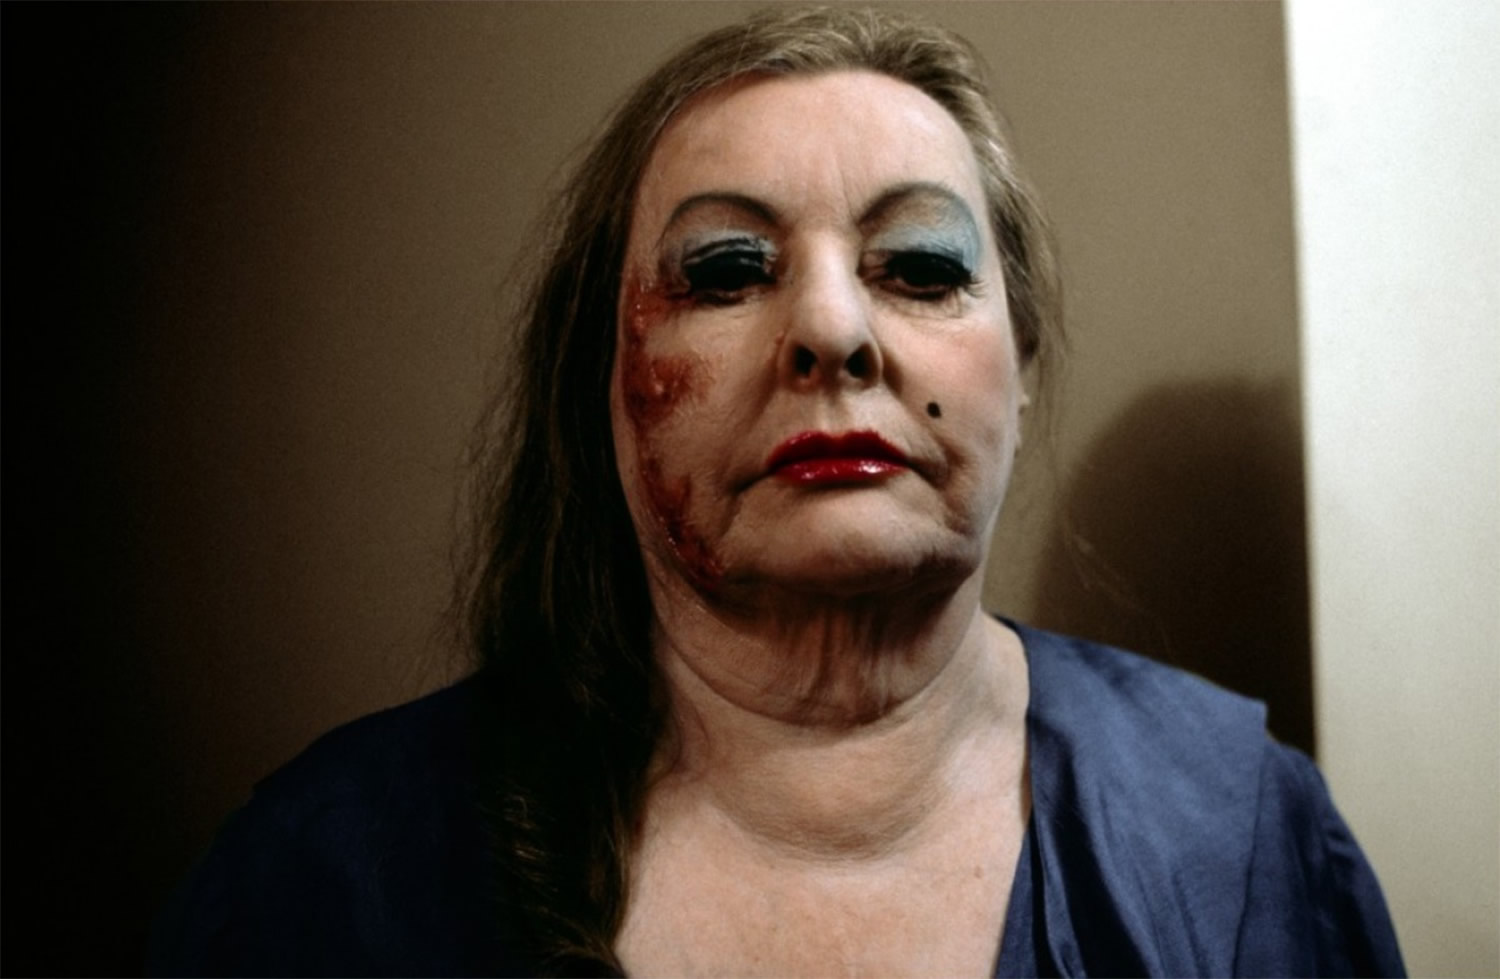 heavy makeup on woman's face in shivers, horror movie by cronenberg